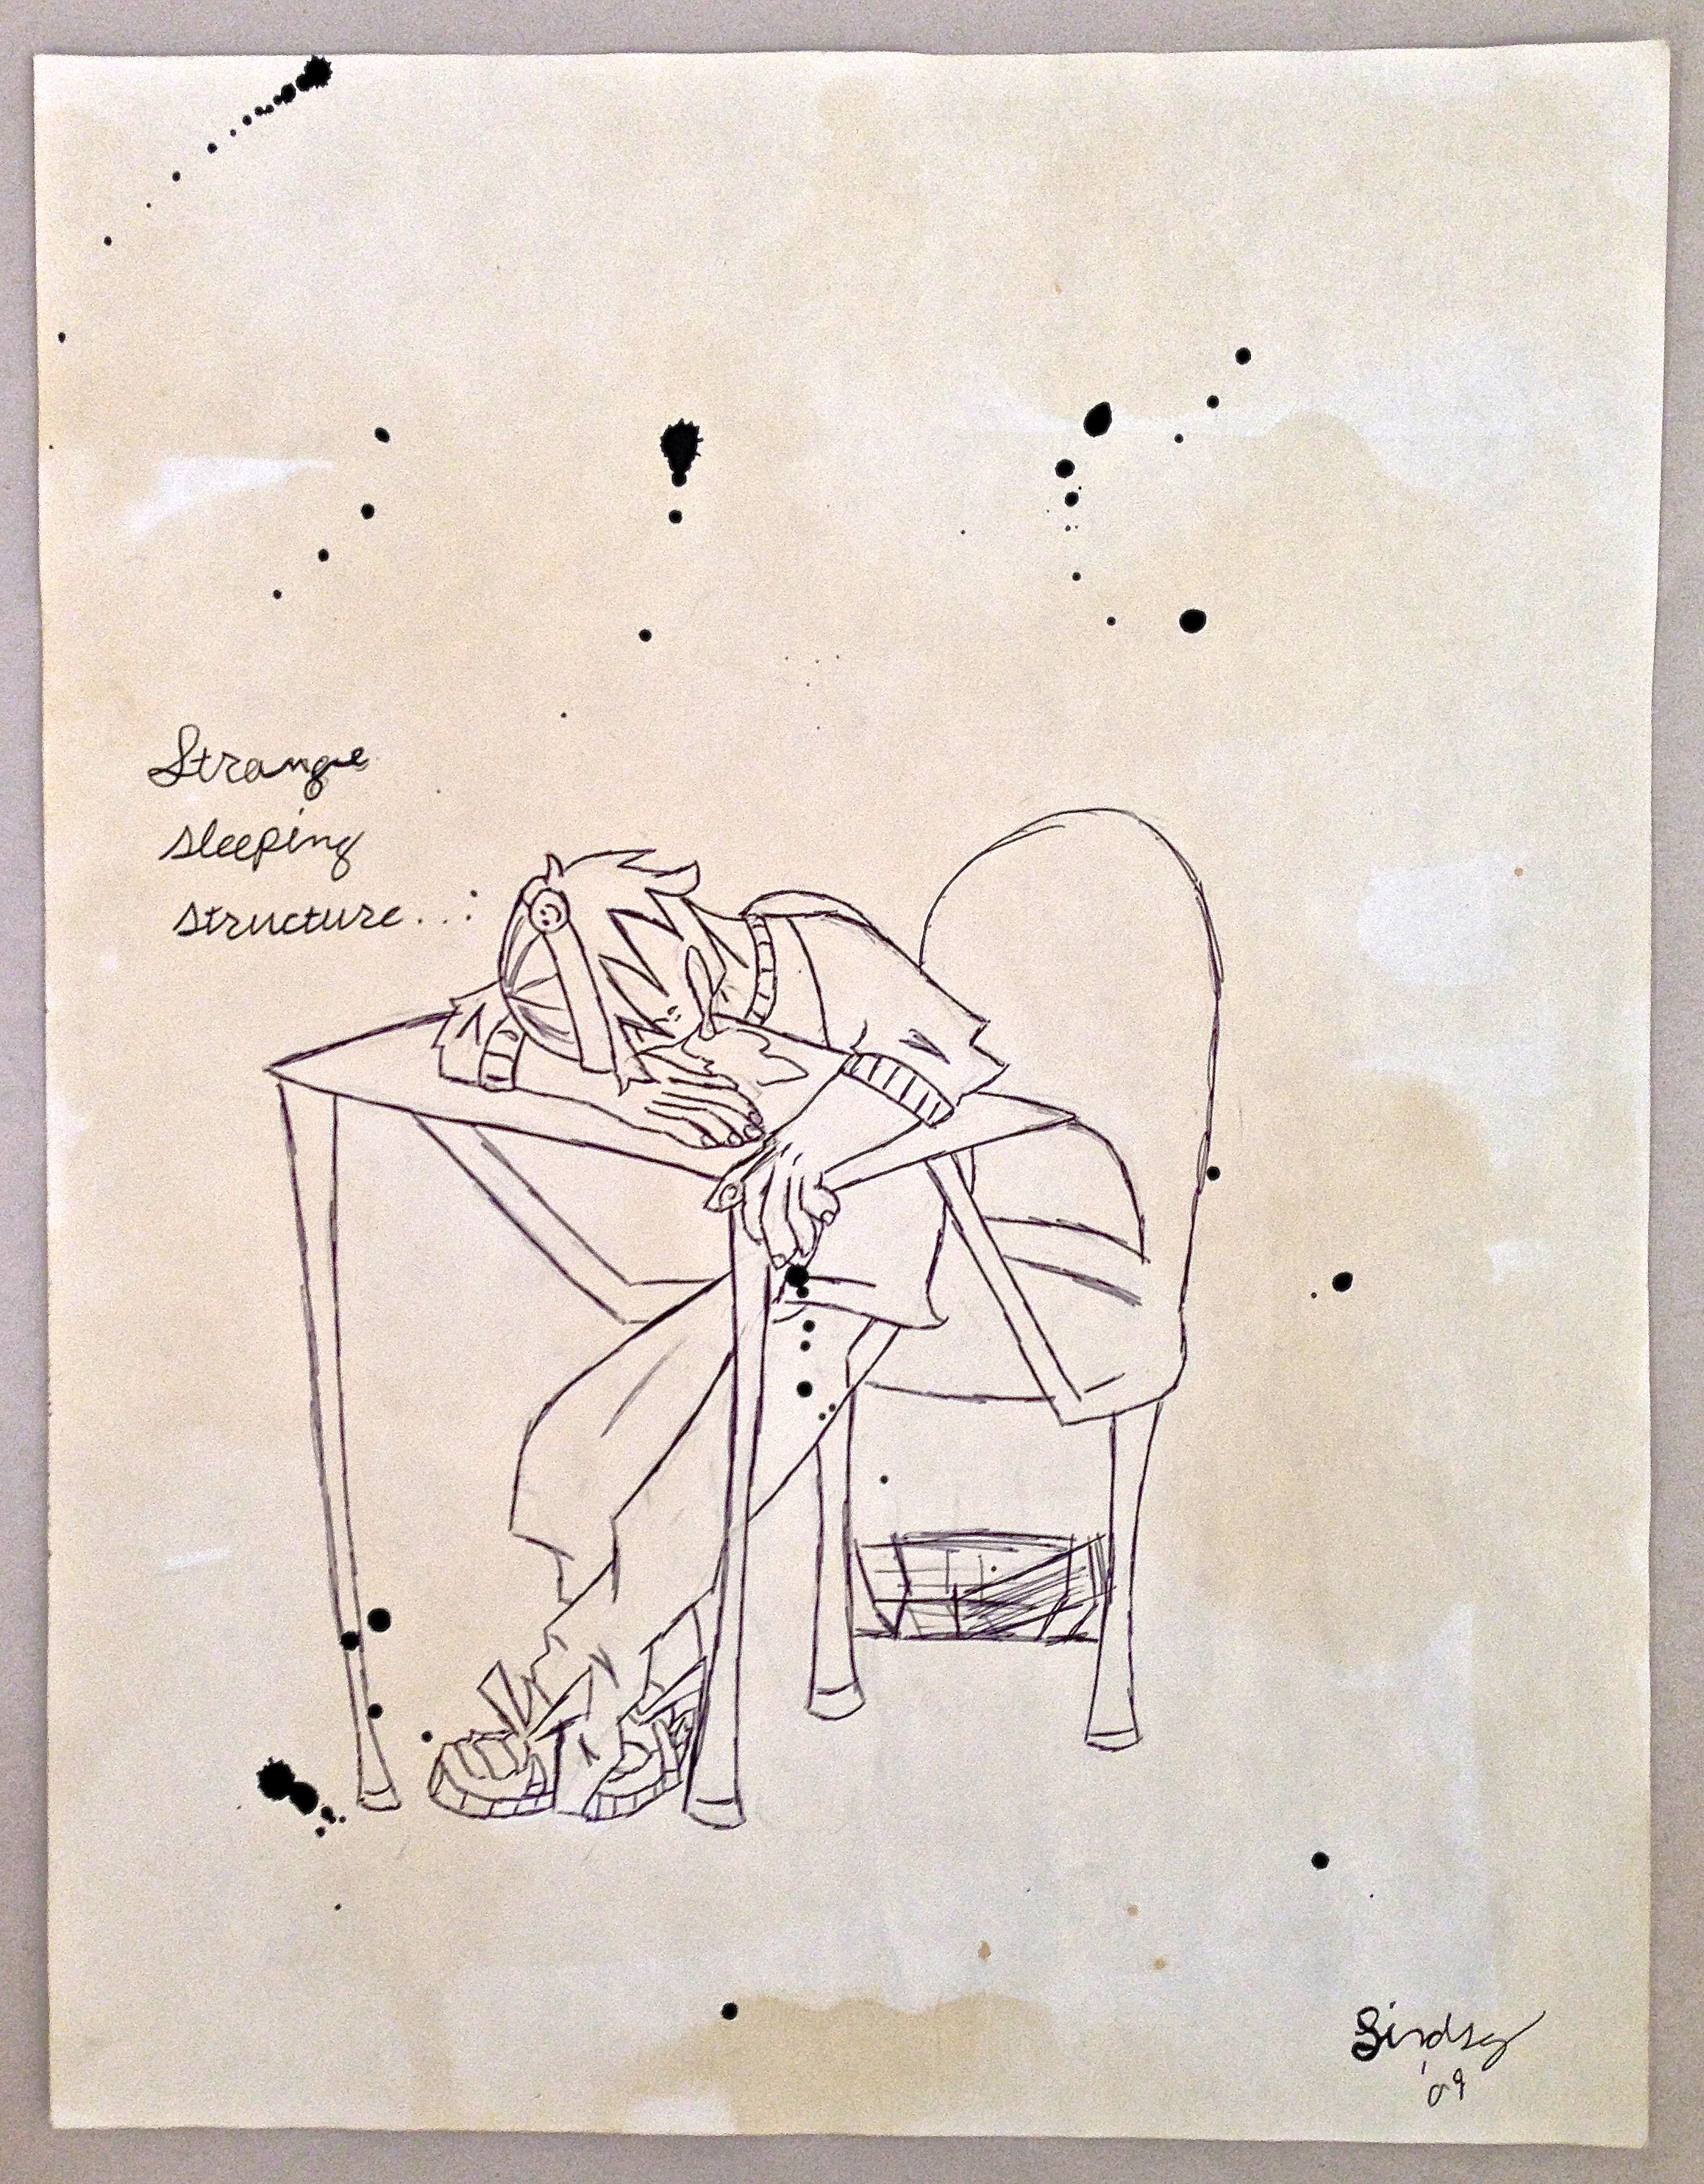 """Student drawing of """"strange sleeping structure"""""""